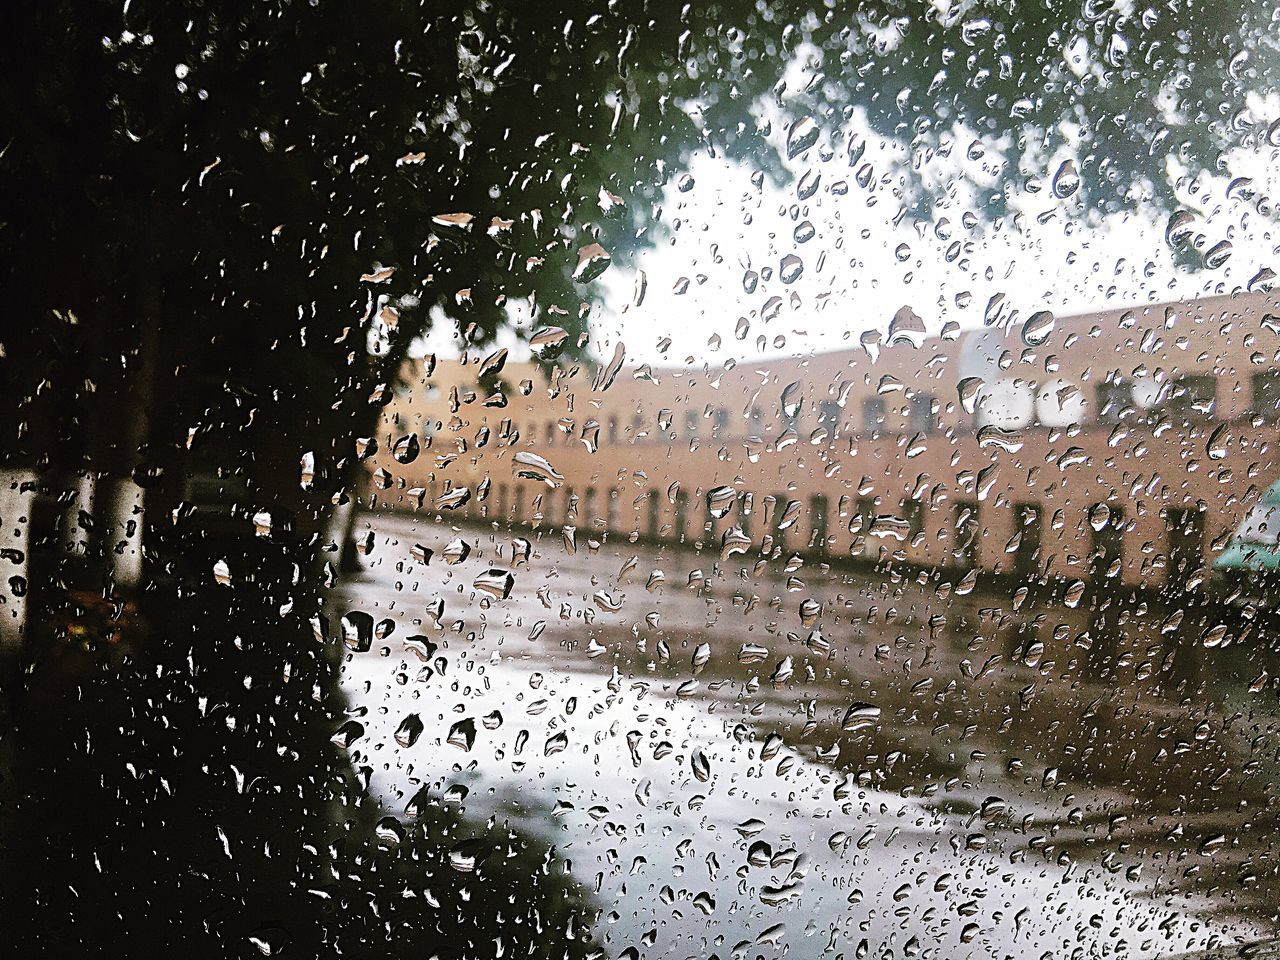 rain, window, drop, wet, glass - material, water, transparent, raindrop, rainy season, vehicle interior, weather, car interior, car, land vehicle, transportation, indoors, mode of transport, windshield, looking through window, droplet, no people, full frame, day, travel, architecture, close-up, built structure, sky, backgrounds, city